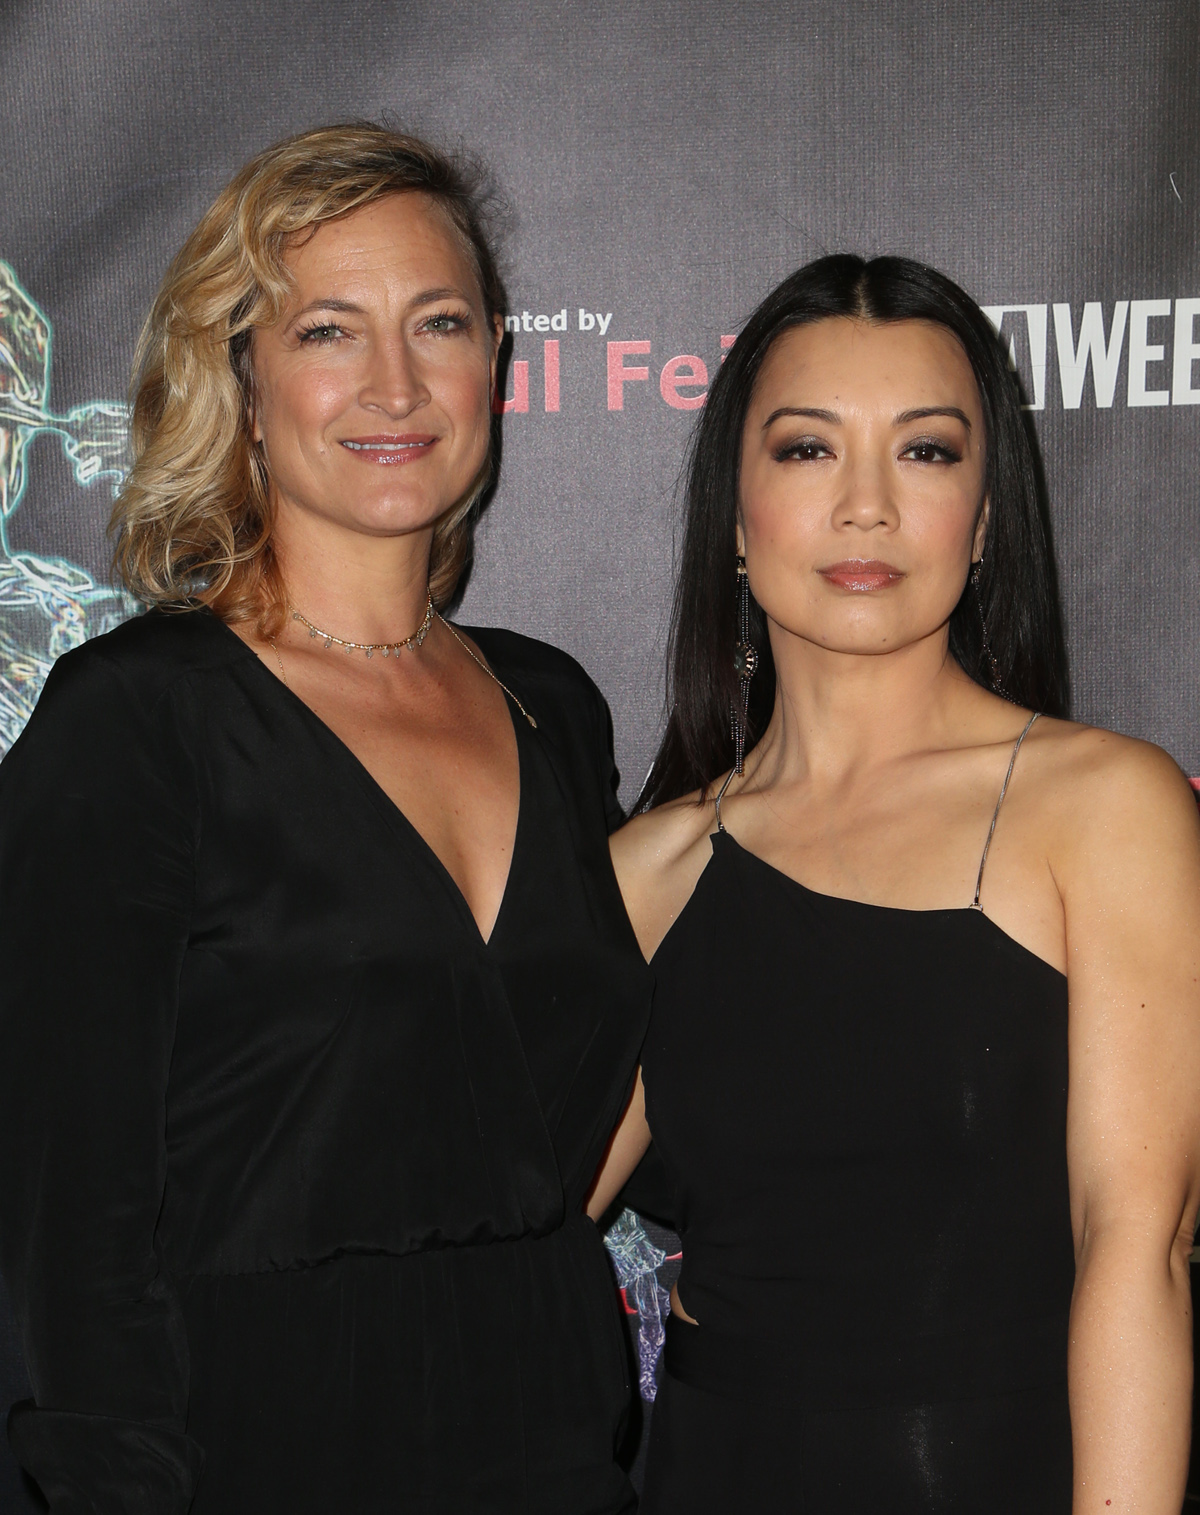 BEVERLY HILLS, CA - APRIL 26: Zoe Bell, Ming-Na Wen, at the 2018 Artemis Awards Gala at the Ahrya Fine Arts Theater in Beverly Hills, California on April 26, 2018. Credit: Faye Sadou/MediaPunch